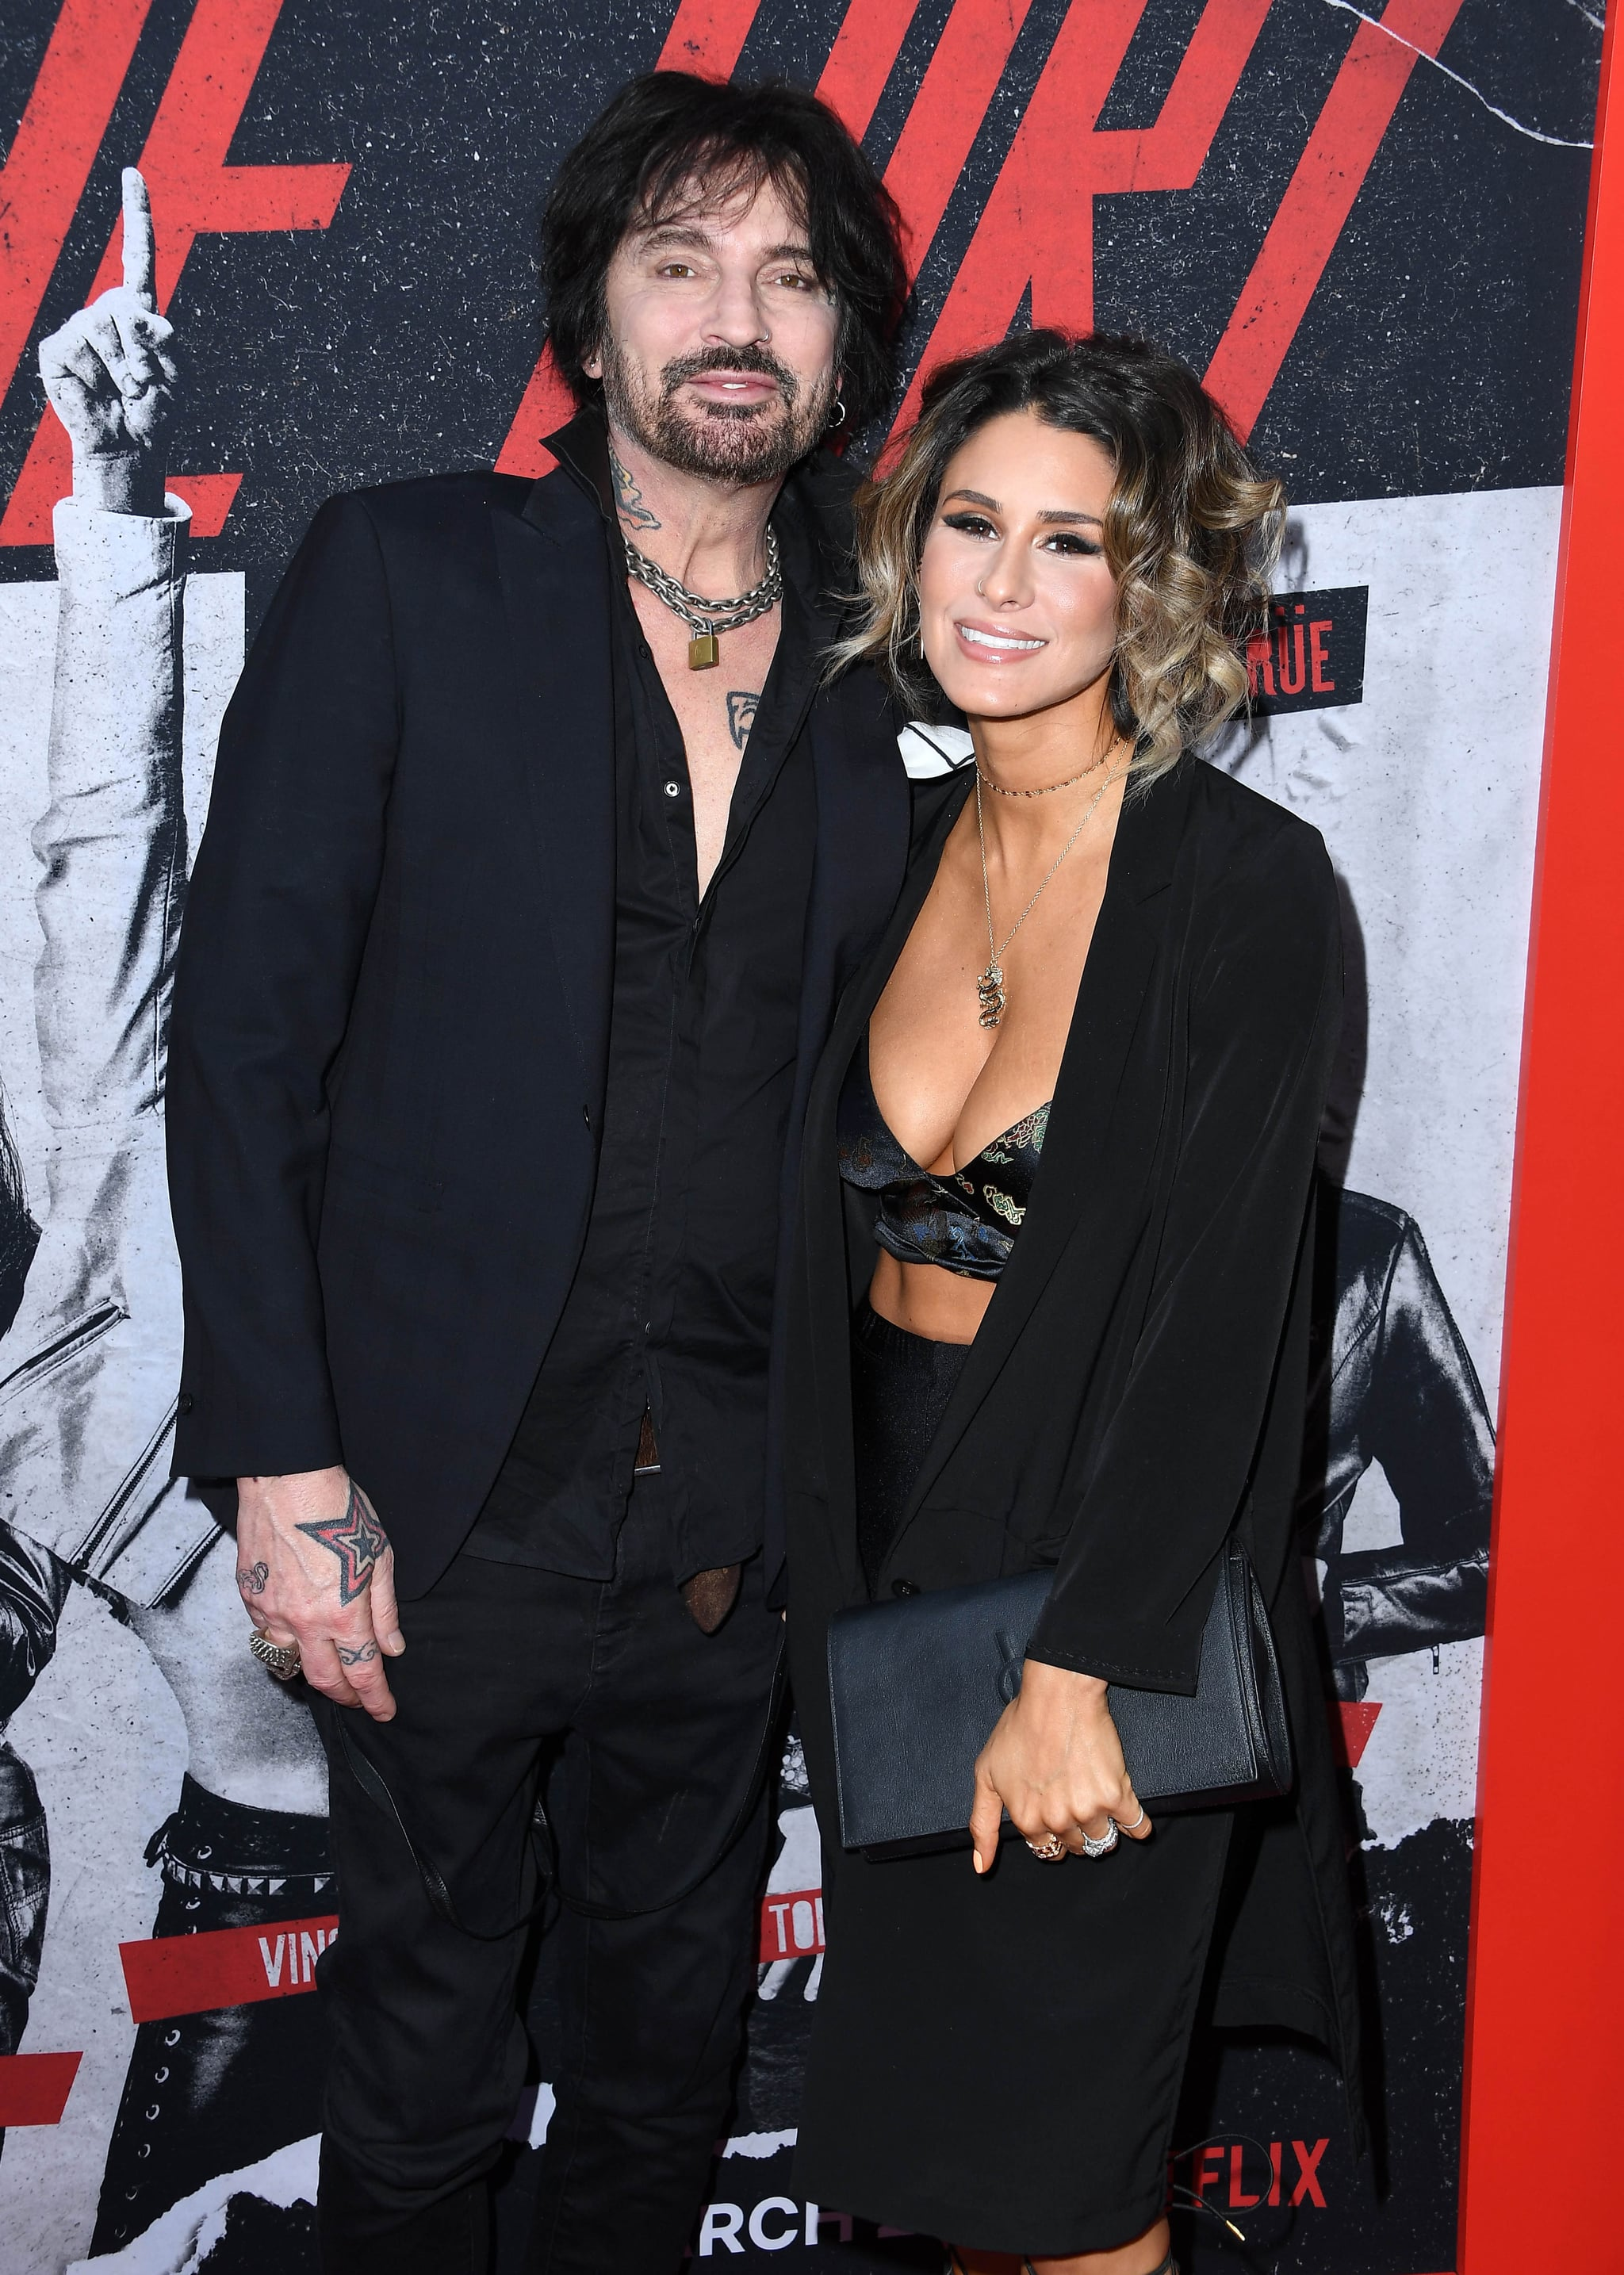 HOLLYWOOD, CALIFORNIA - MARCH 18: Tommy Lee and Brittany Furlan arrive at the Premiere Of Netflix's